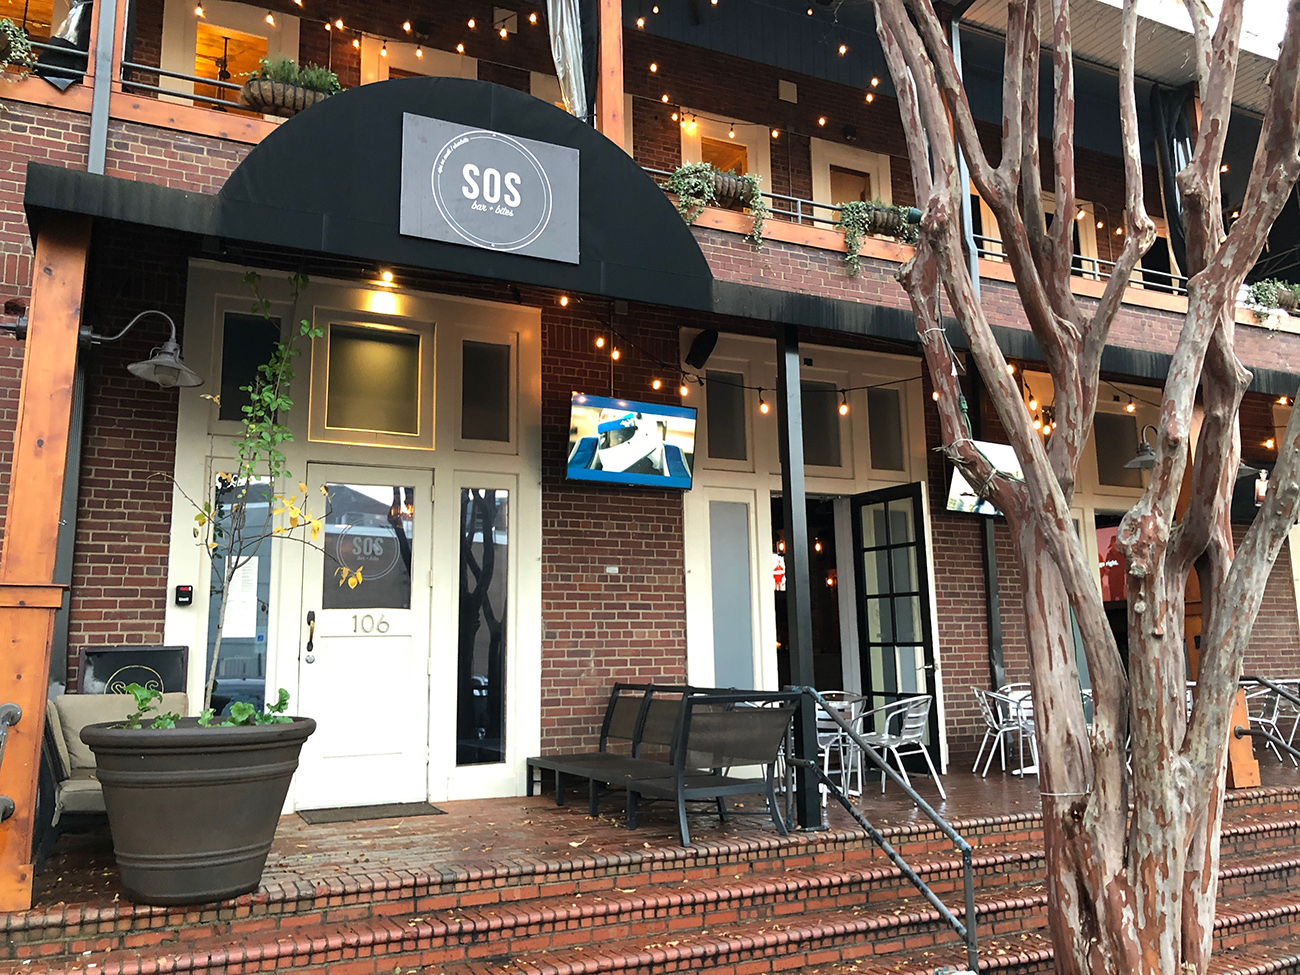 Sips on South now open and bringing all-you-can-eat crab legs to South End